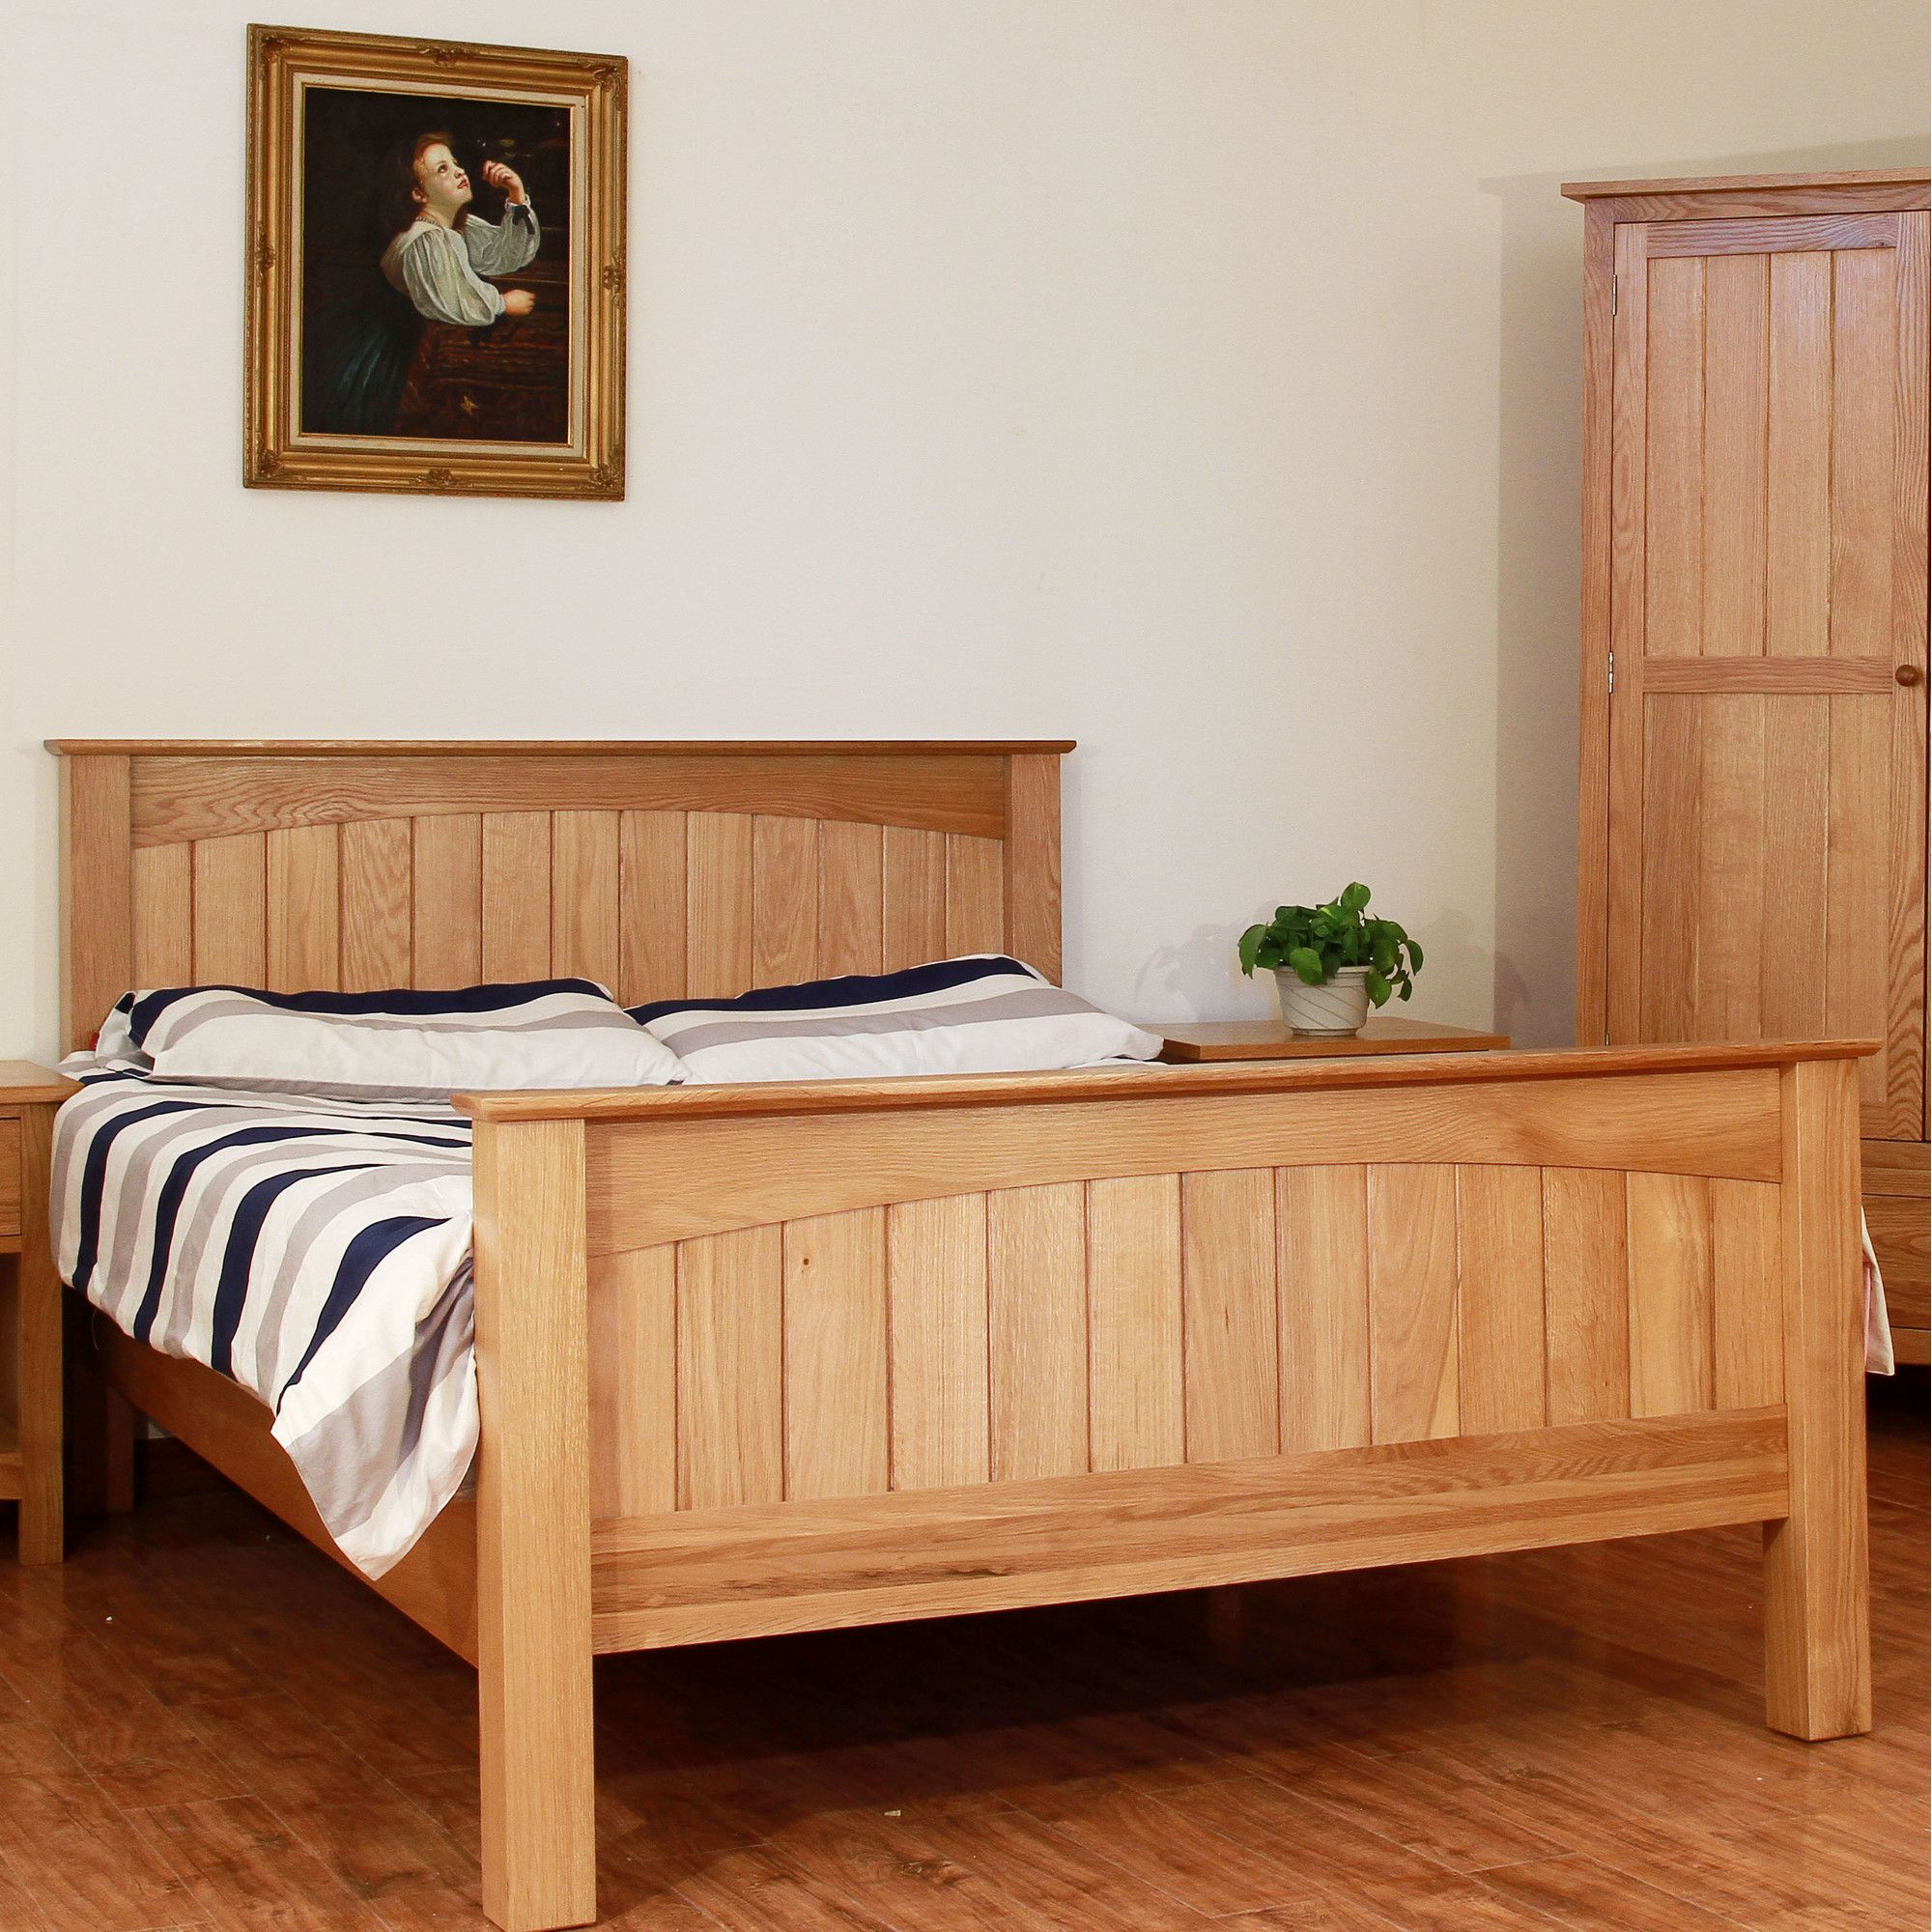 Elements Farmhouse Bed Frame - King at Tesco Direct